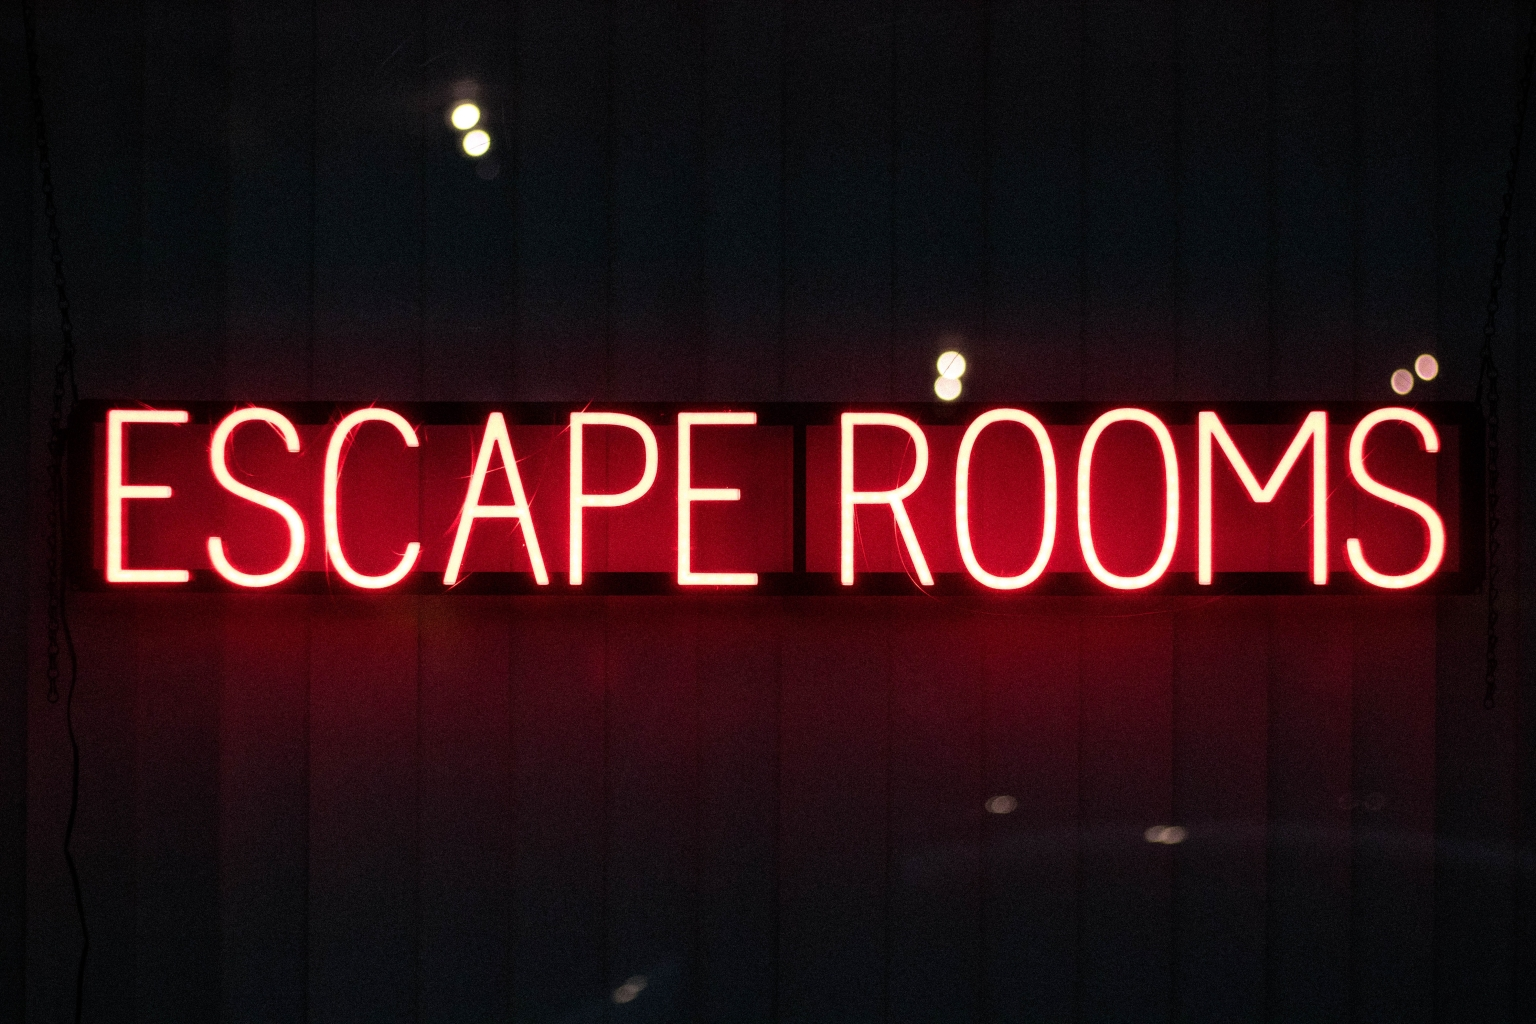 Common Riddles for Escape Rooms